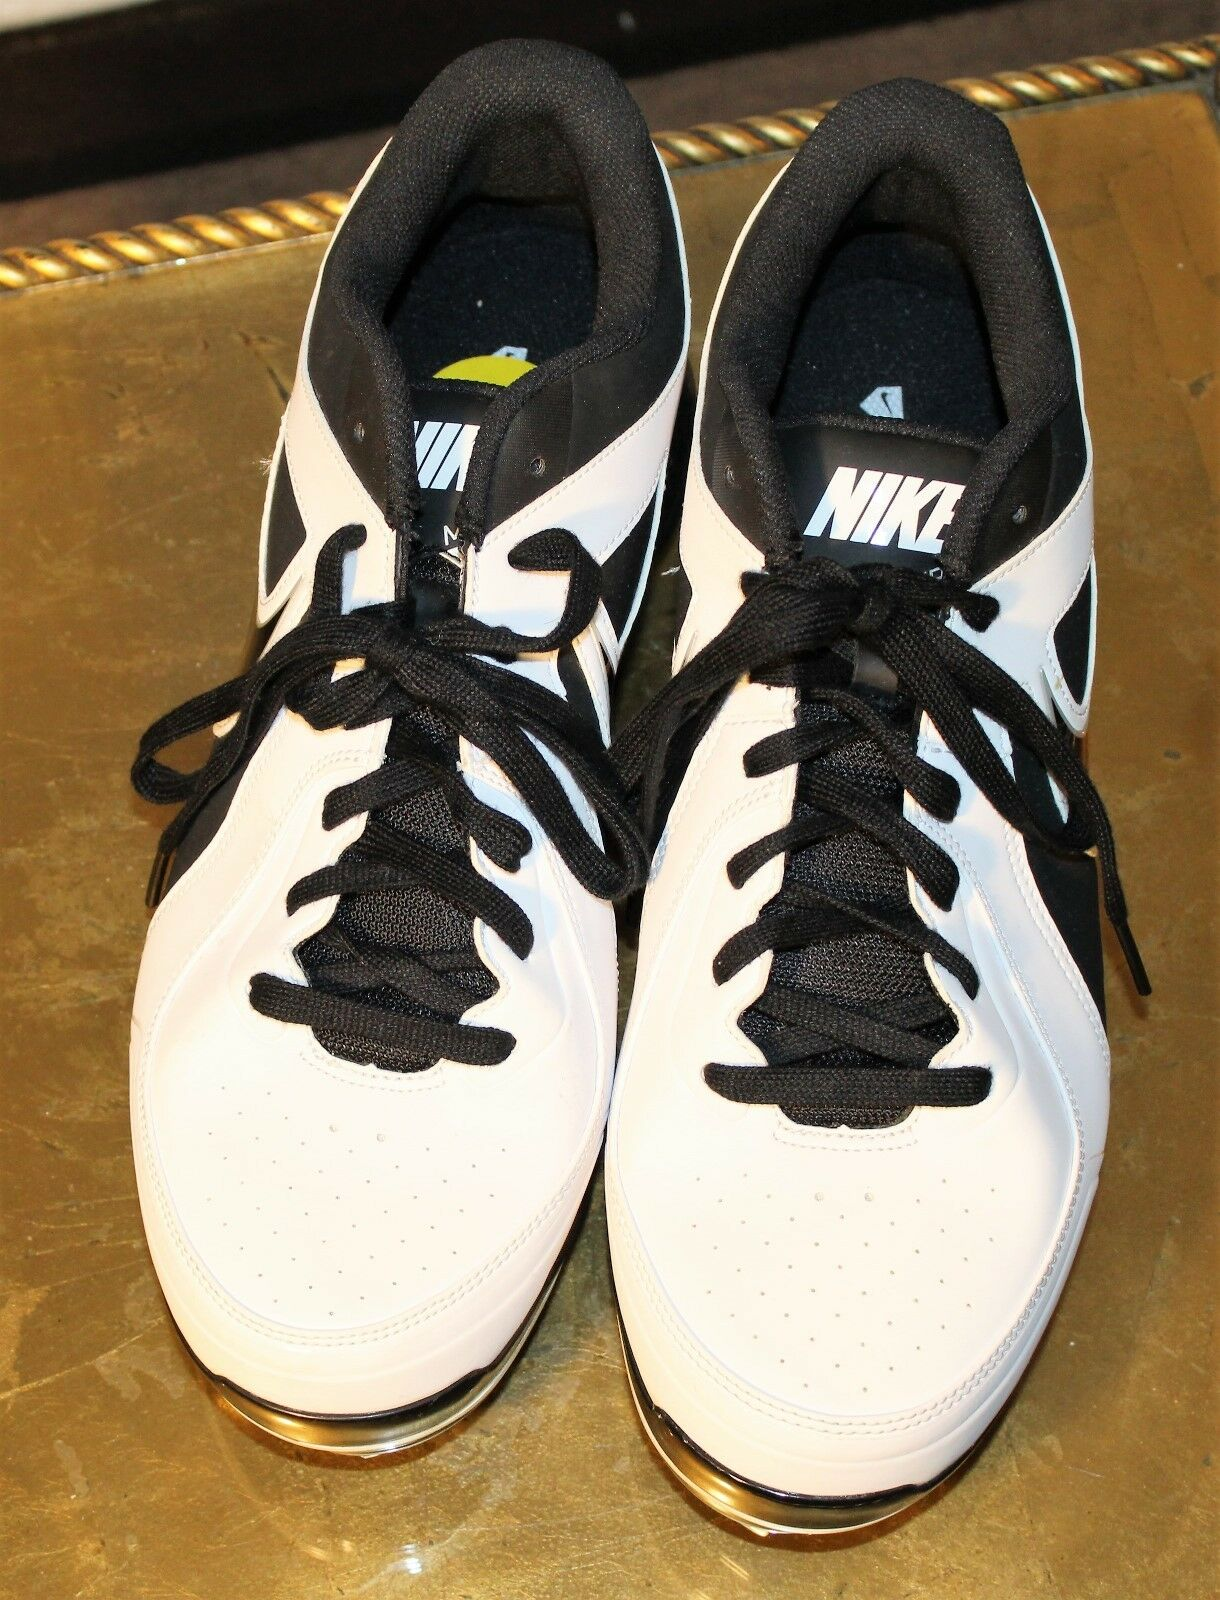 NEW SZ 13 homme NIKE Baseball MVP Pro faible Metal Baseball NIKE Cleats 524641-100 blanc/noir 7308ef